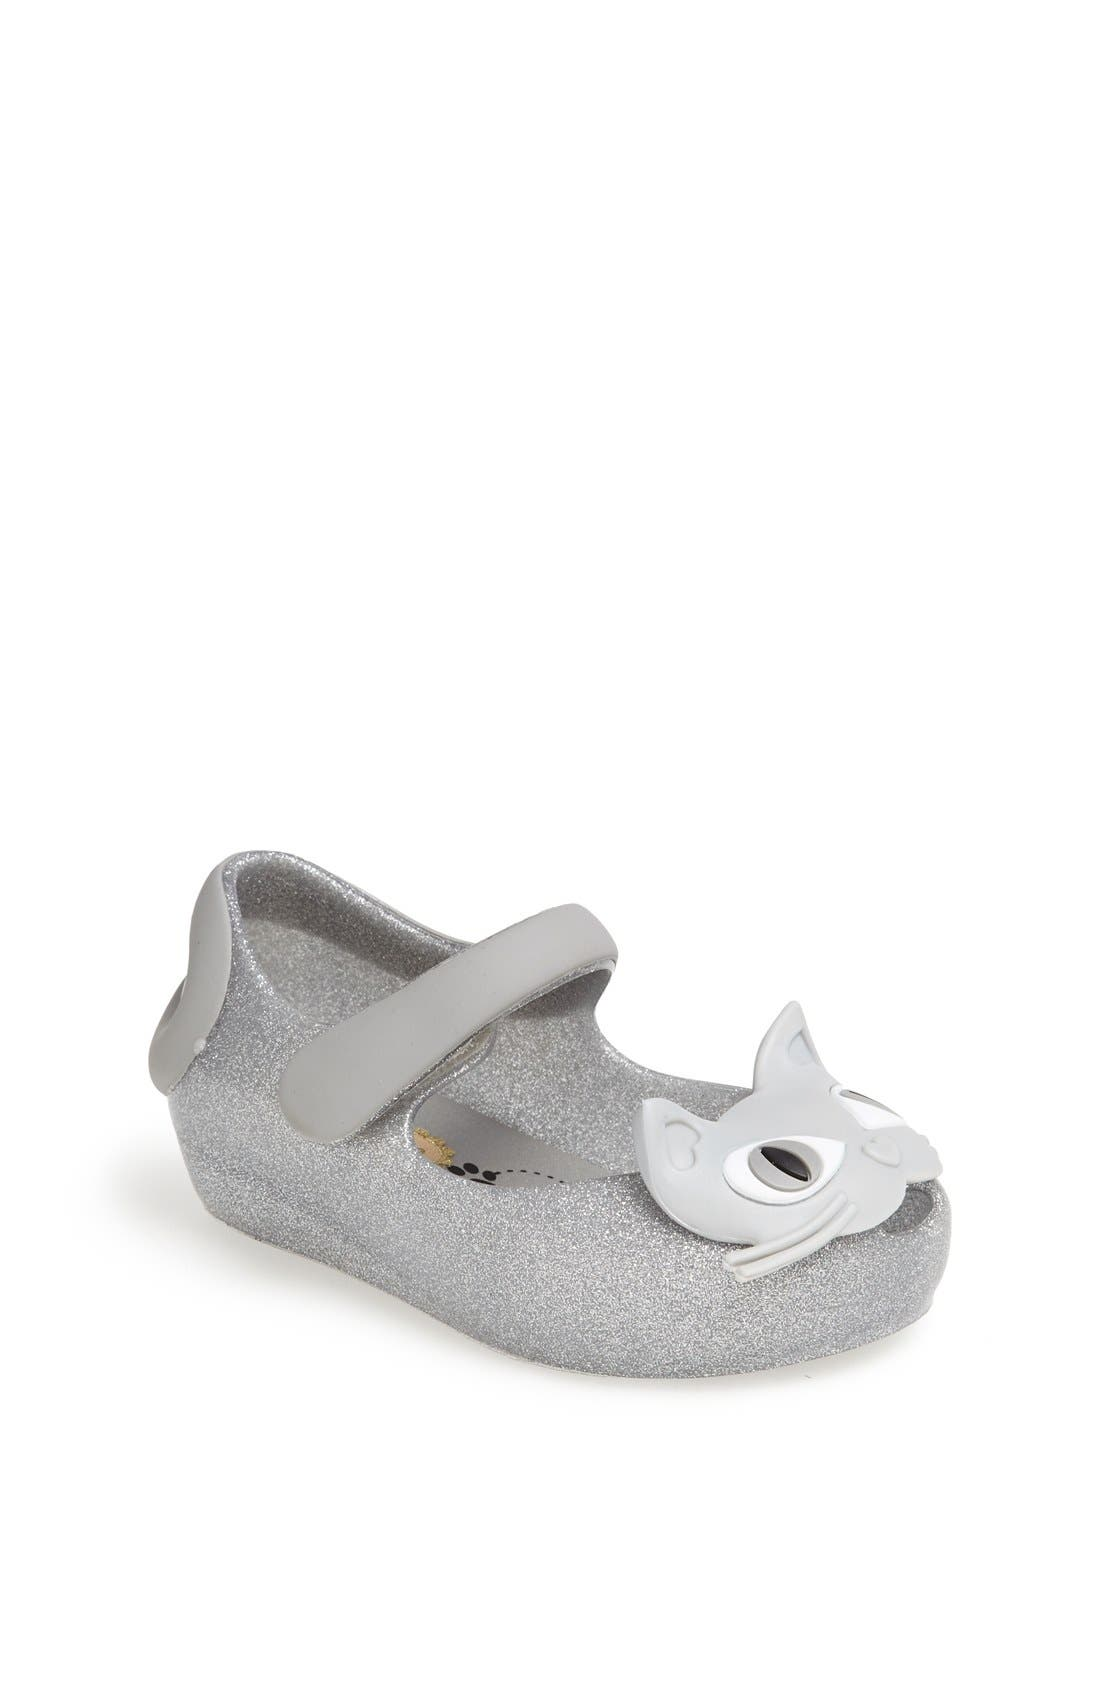 'Ultragirl II' Slip-On,                         Main,                         color, Silver Glitter